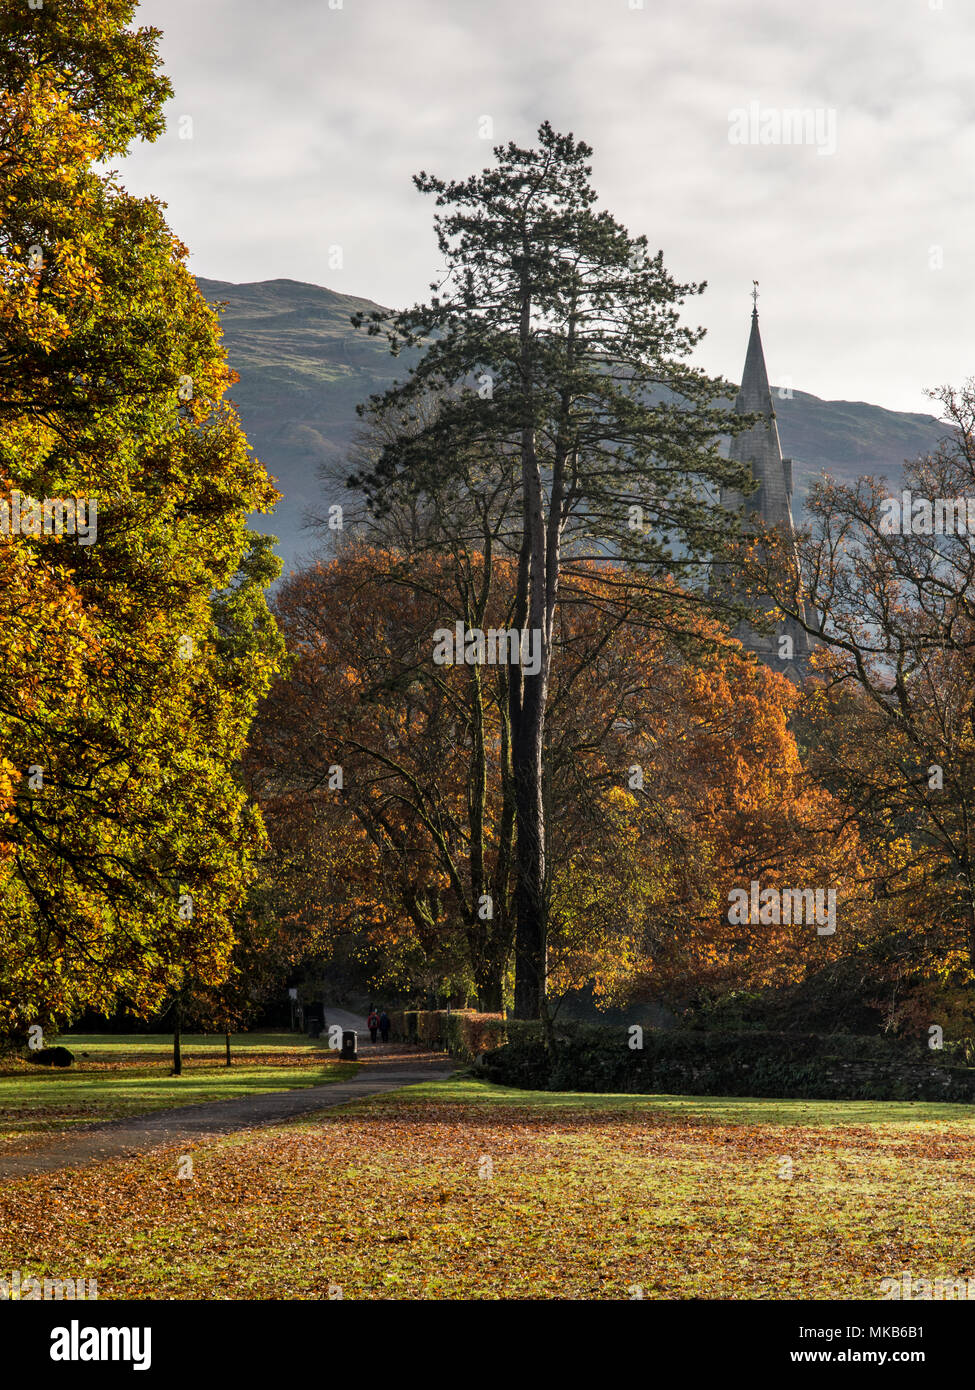 The spire of Ambleside Parish Church can be seen through the autumn leaves of trees in Rothay Park, in England's Lake District National Park. - Stock Image